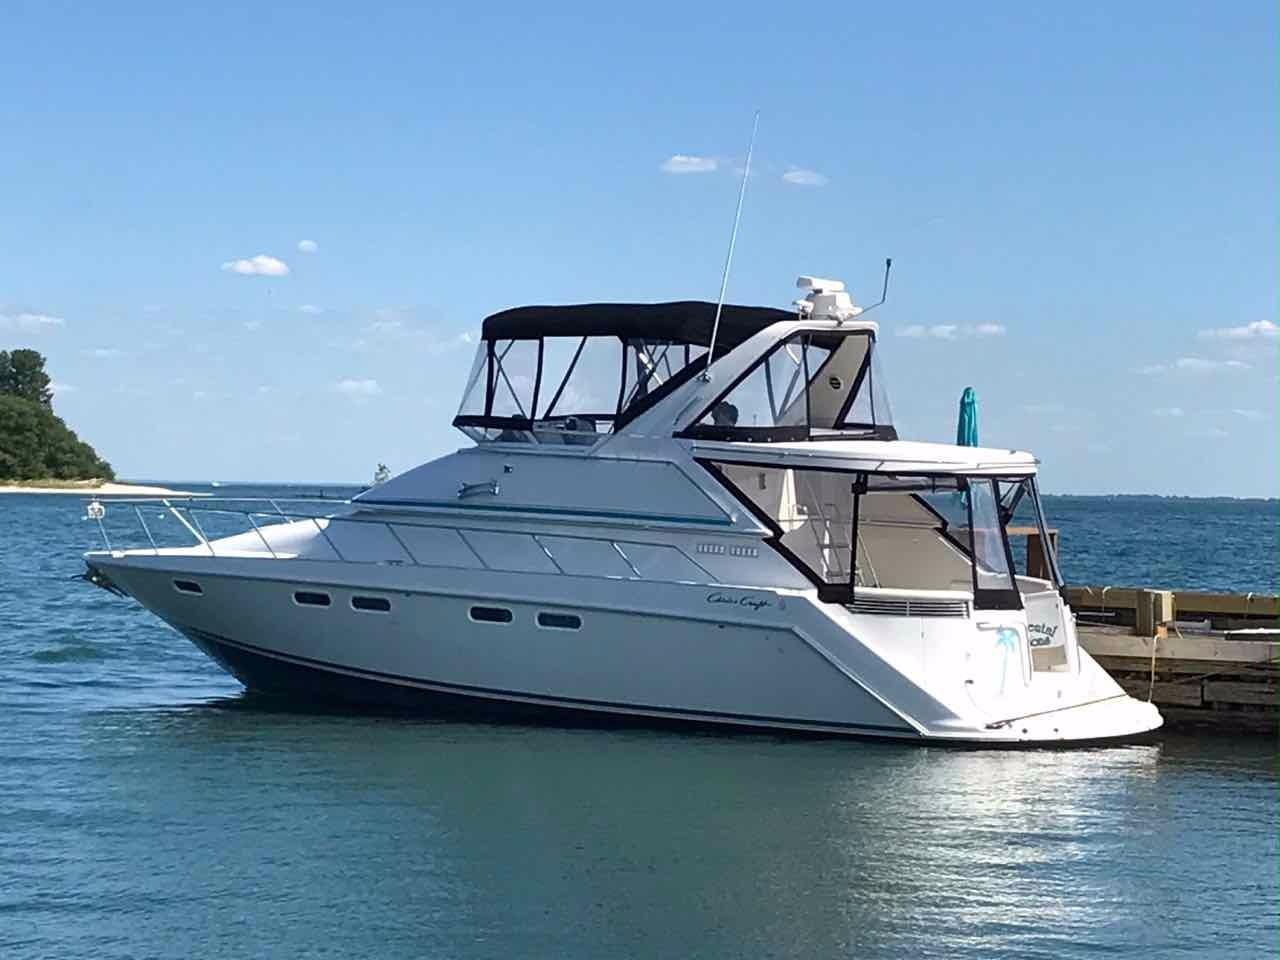 Boats For Sale Cincinnati >> 1994 Chris-Craft 421 Continental Power Boat For Sale - www.yachtworld.com